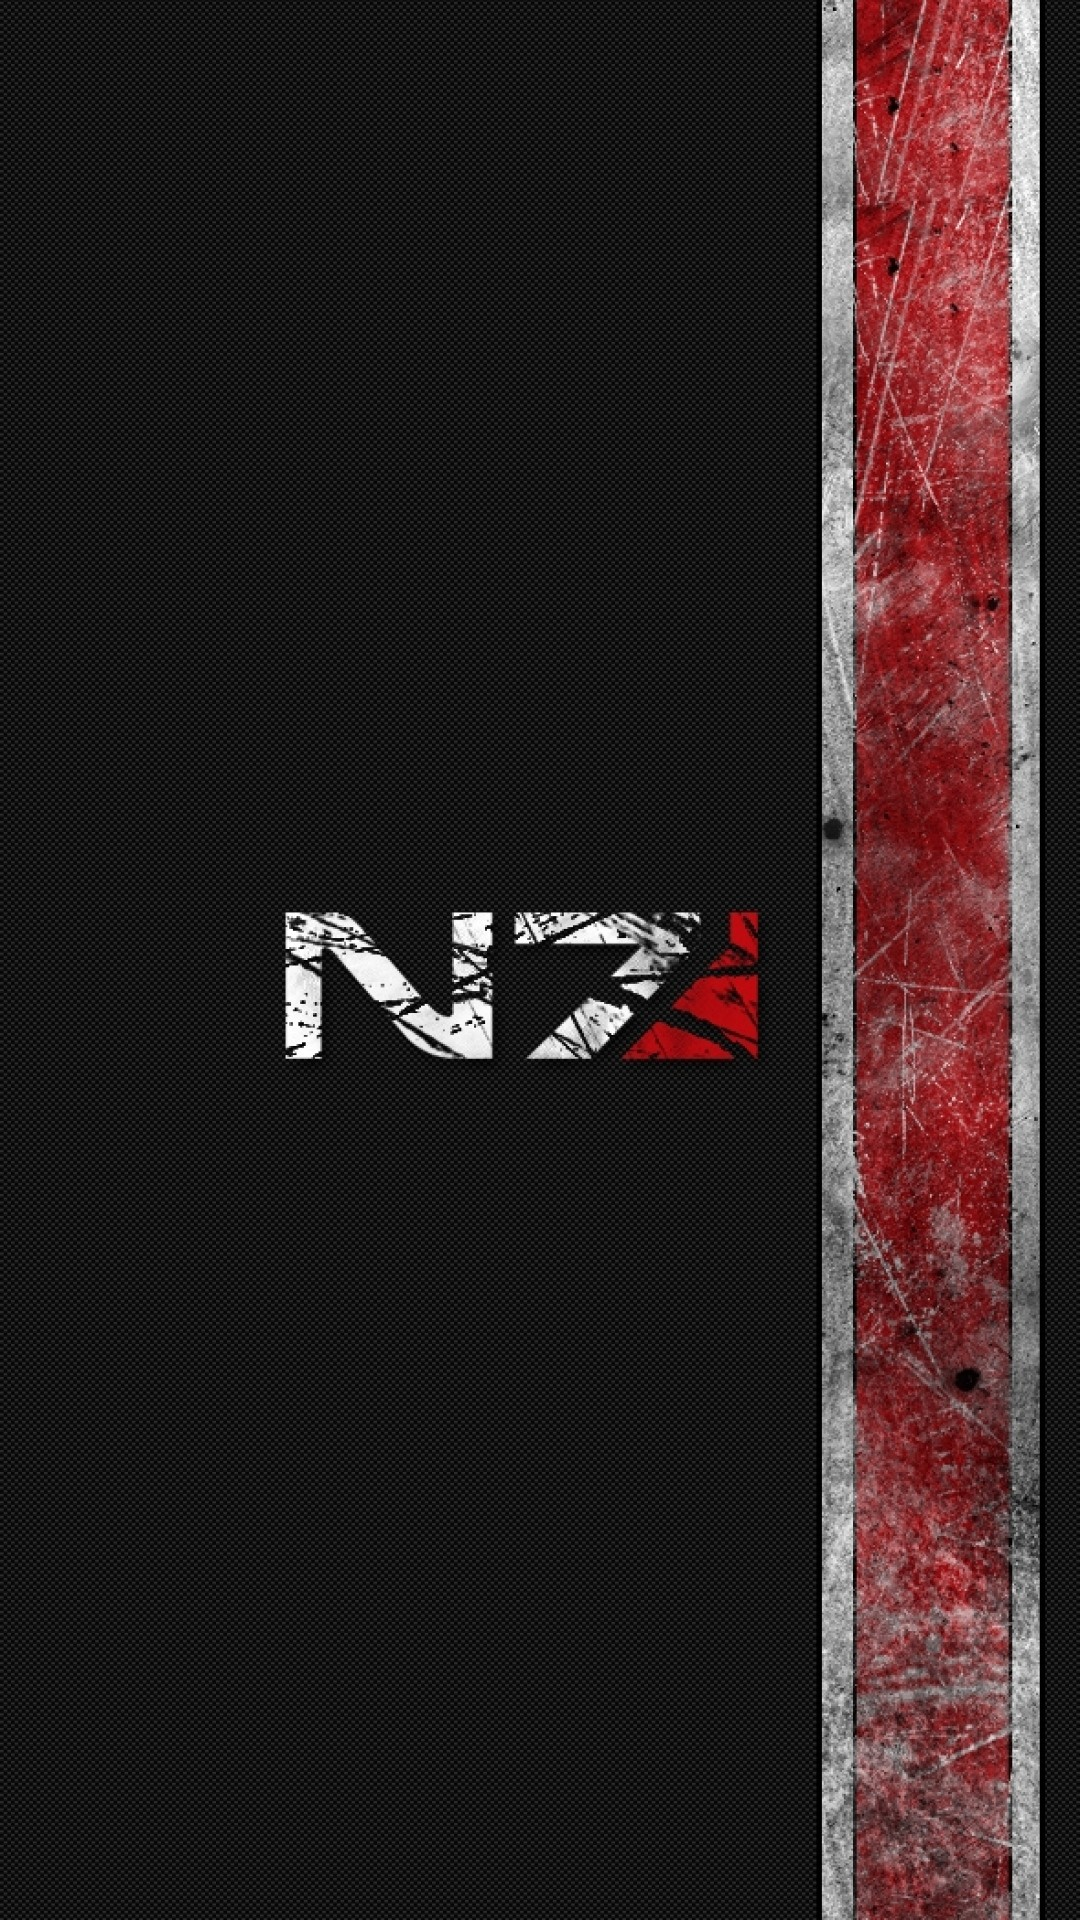 Mass Effect Android Wallpaper (66+ images)